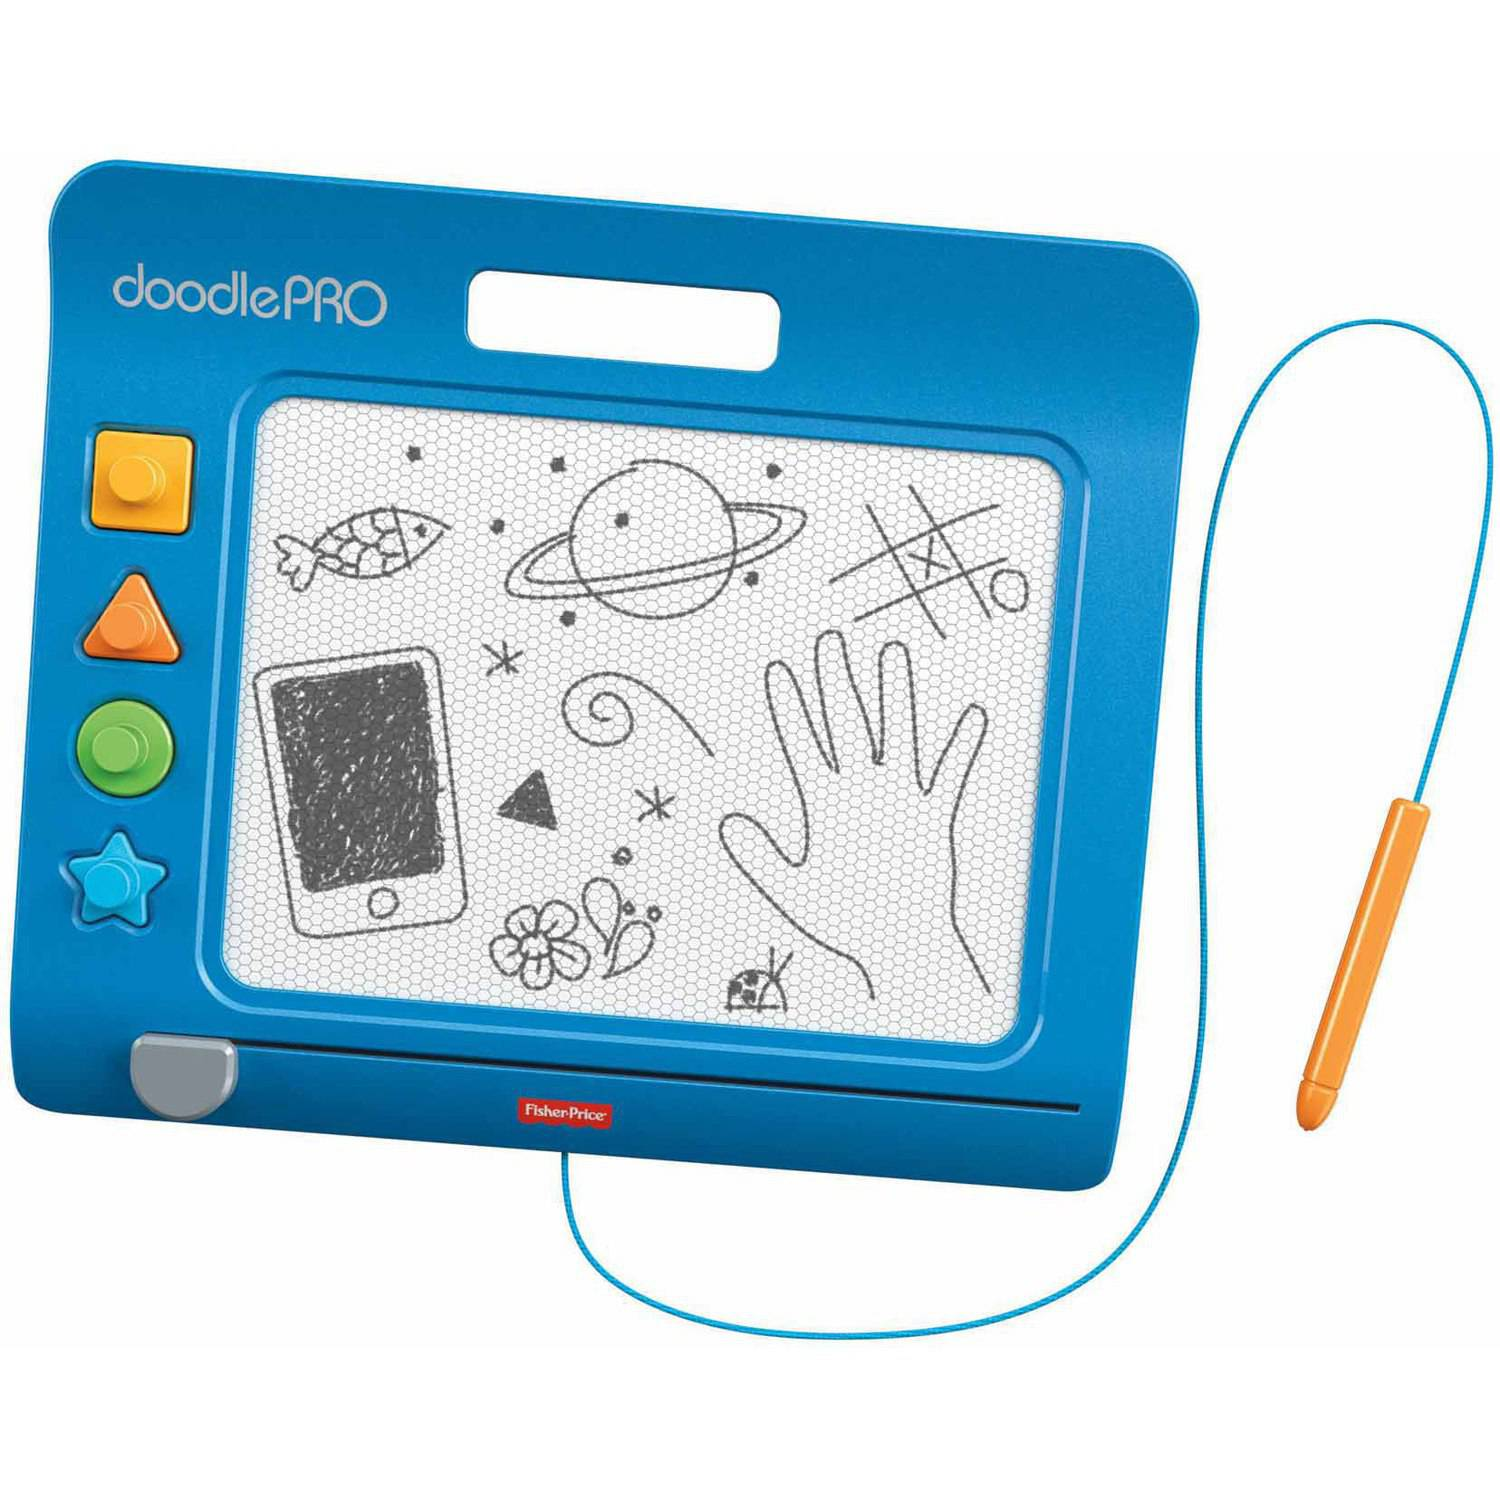 Fisher Price Doodle Pro Slim, Blue by FISHER PRICE